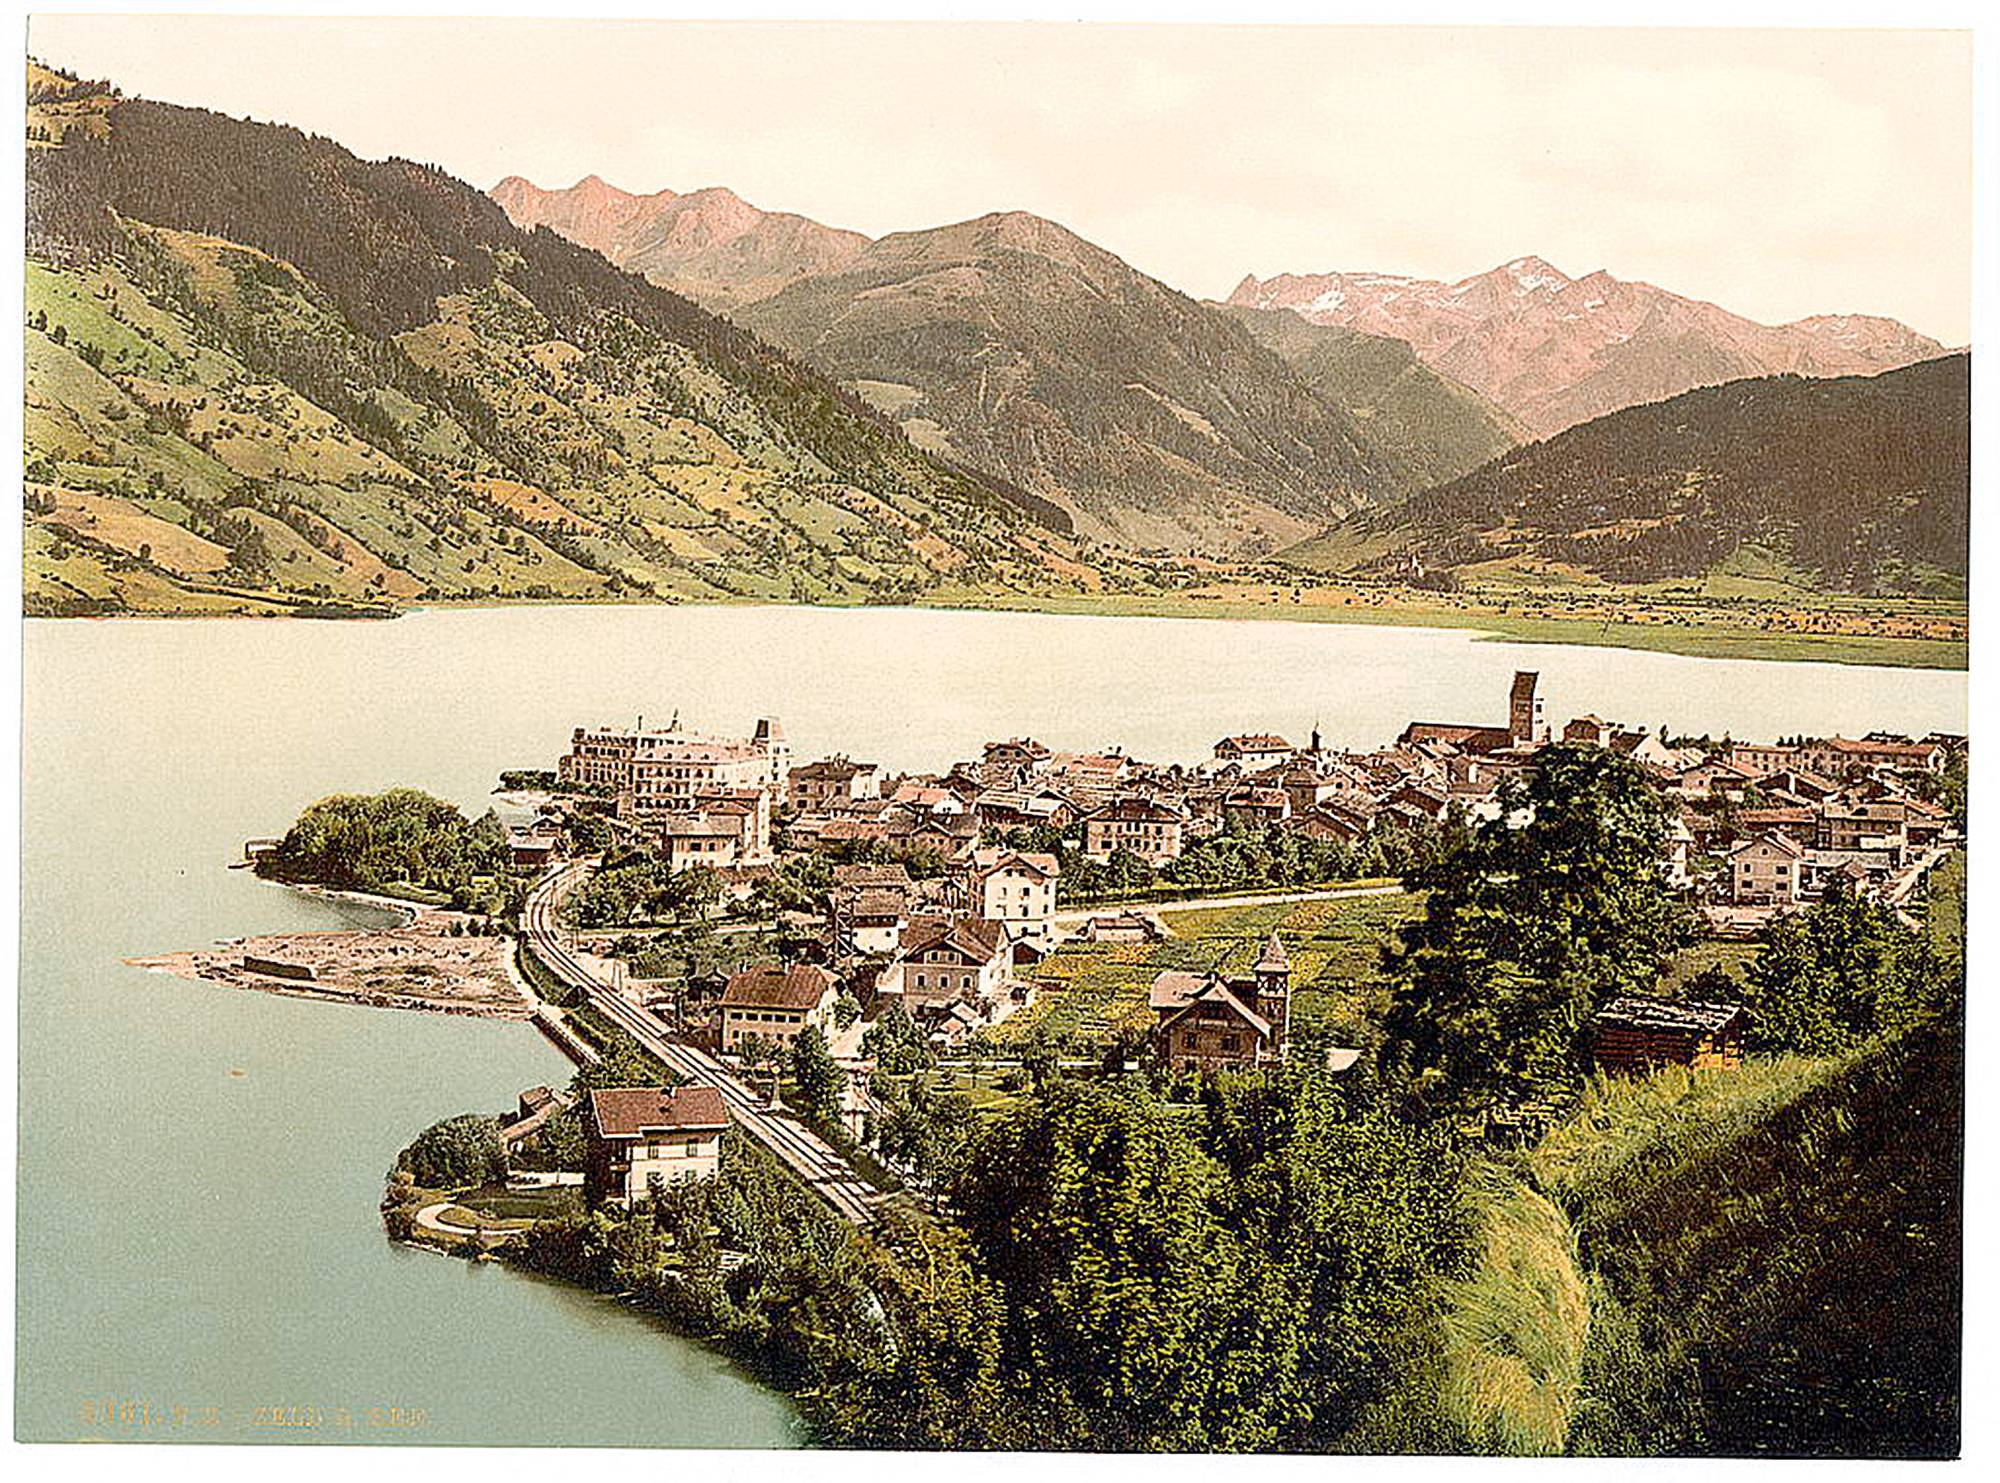 Zell am See at around 1900